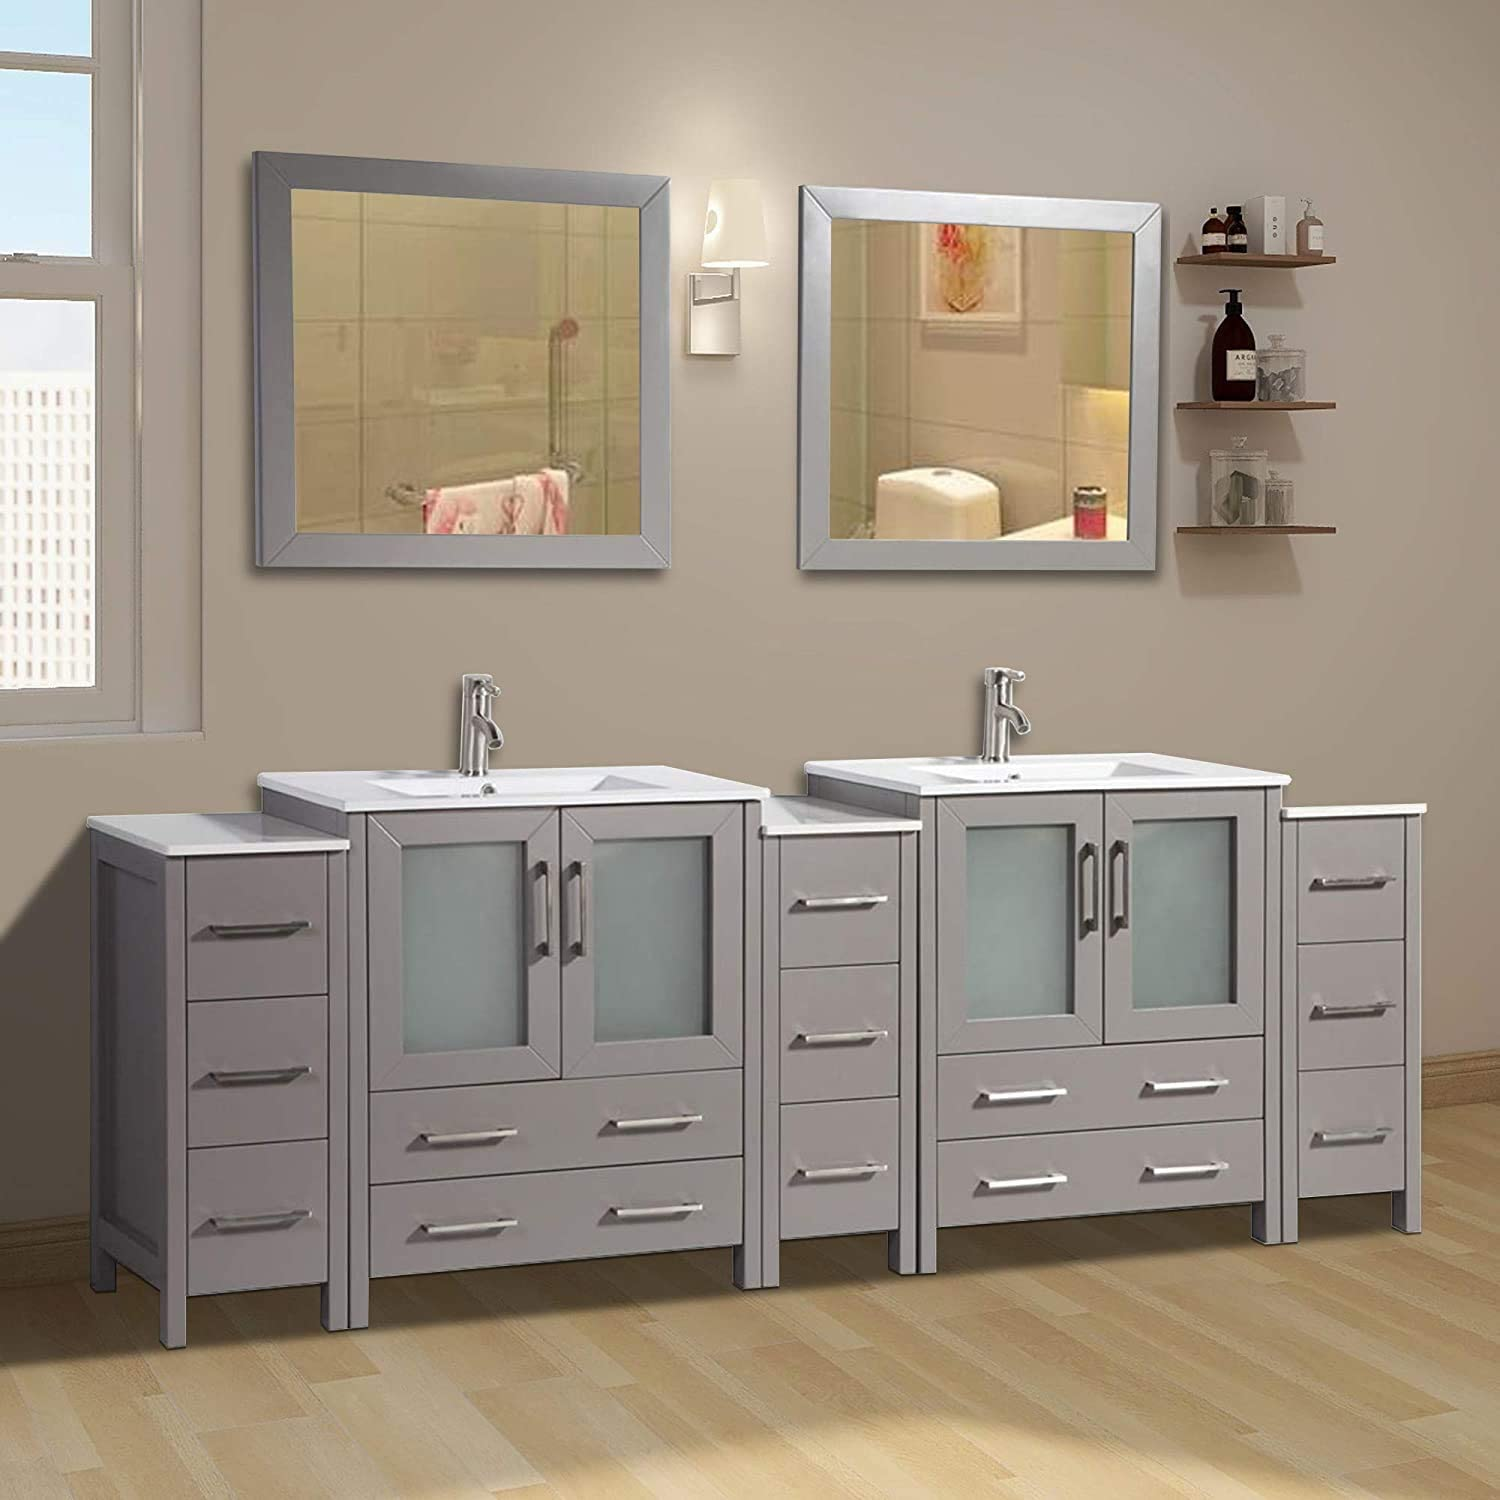 Buy Vanity Art 96 Inch Double Sink Modern Bathroom Vanity Compact Set 2 Shelves 13 Dove Tailed Drawers Ceramic Top Under Mount Sink Bathroom Cabinet With Two Free Mirrors Va3030 96 G Online In Indonesia B01jrl93ku